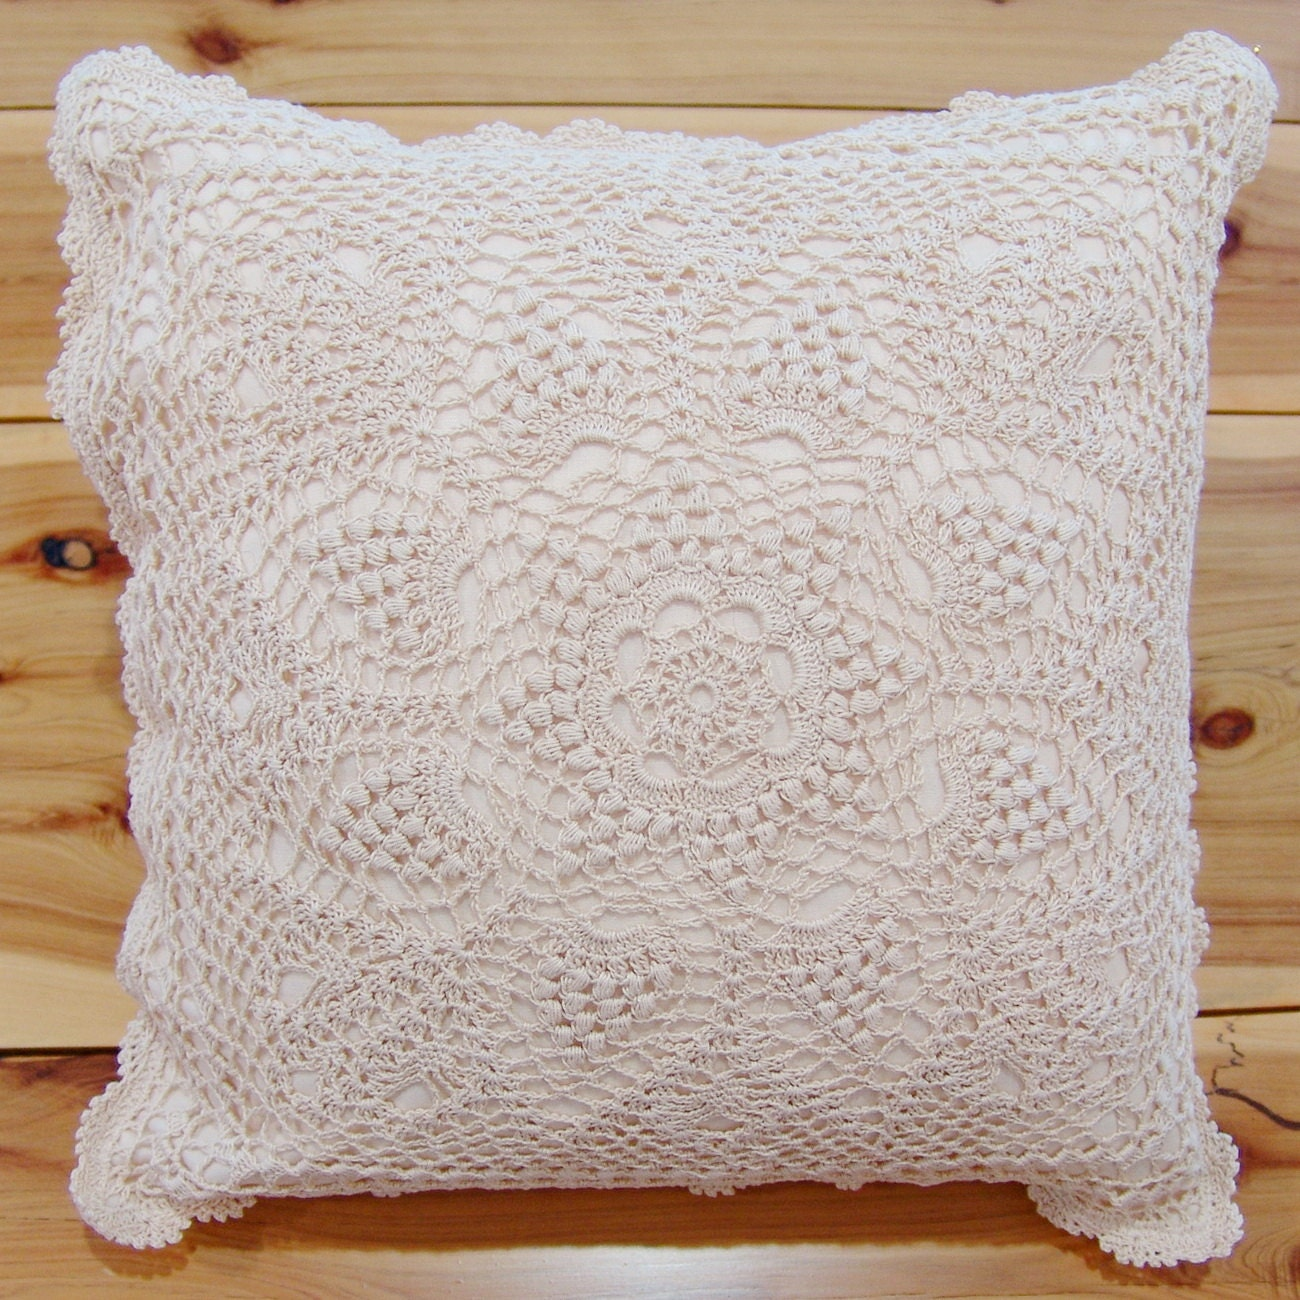 How To Make Throw Pillow Covers By Hand : Hand Crochet Lace Cushion Cover Throw Pillow Cover Table